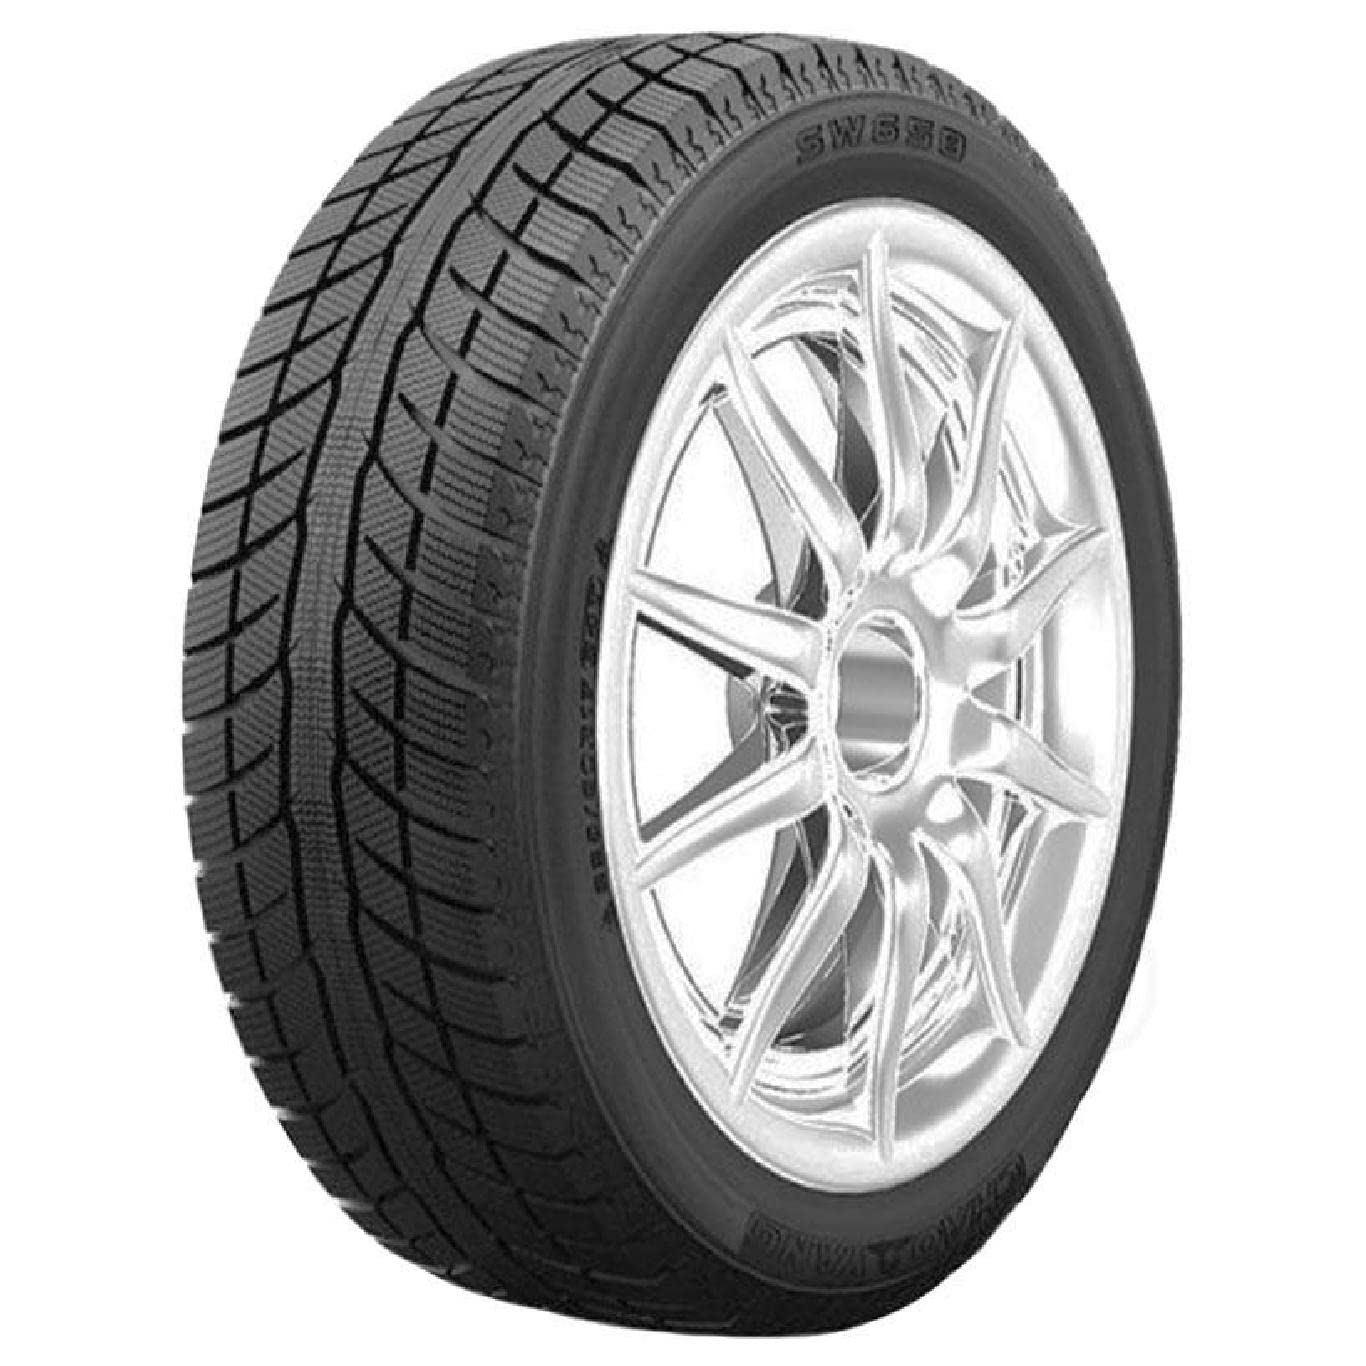 Goodride SW658 ( 235/65 R17 104T Nordic compound ) von Goodride